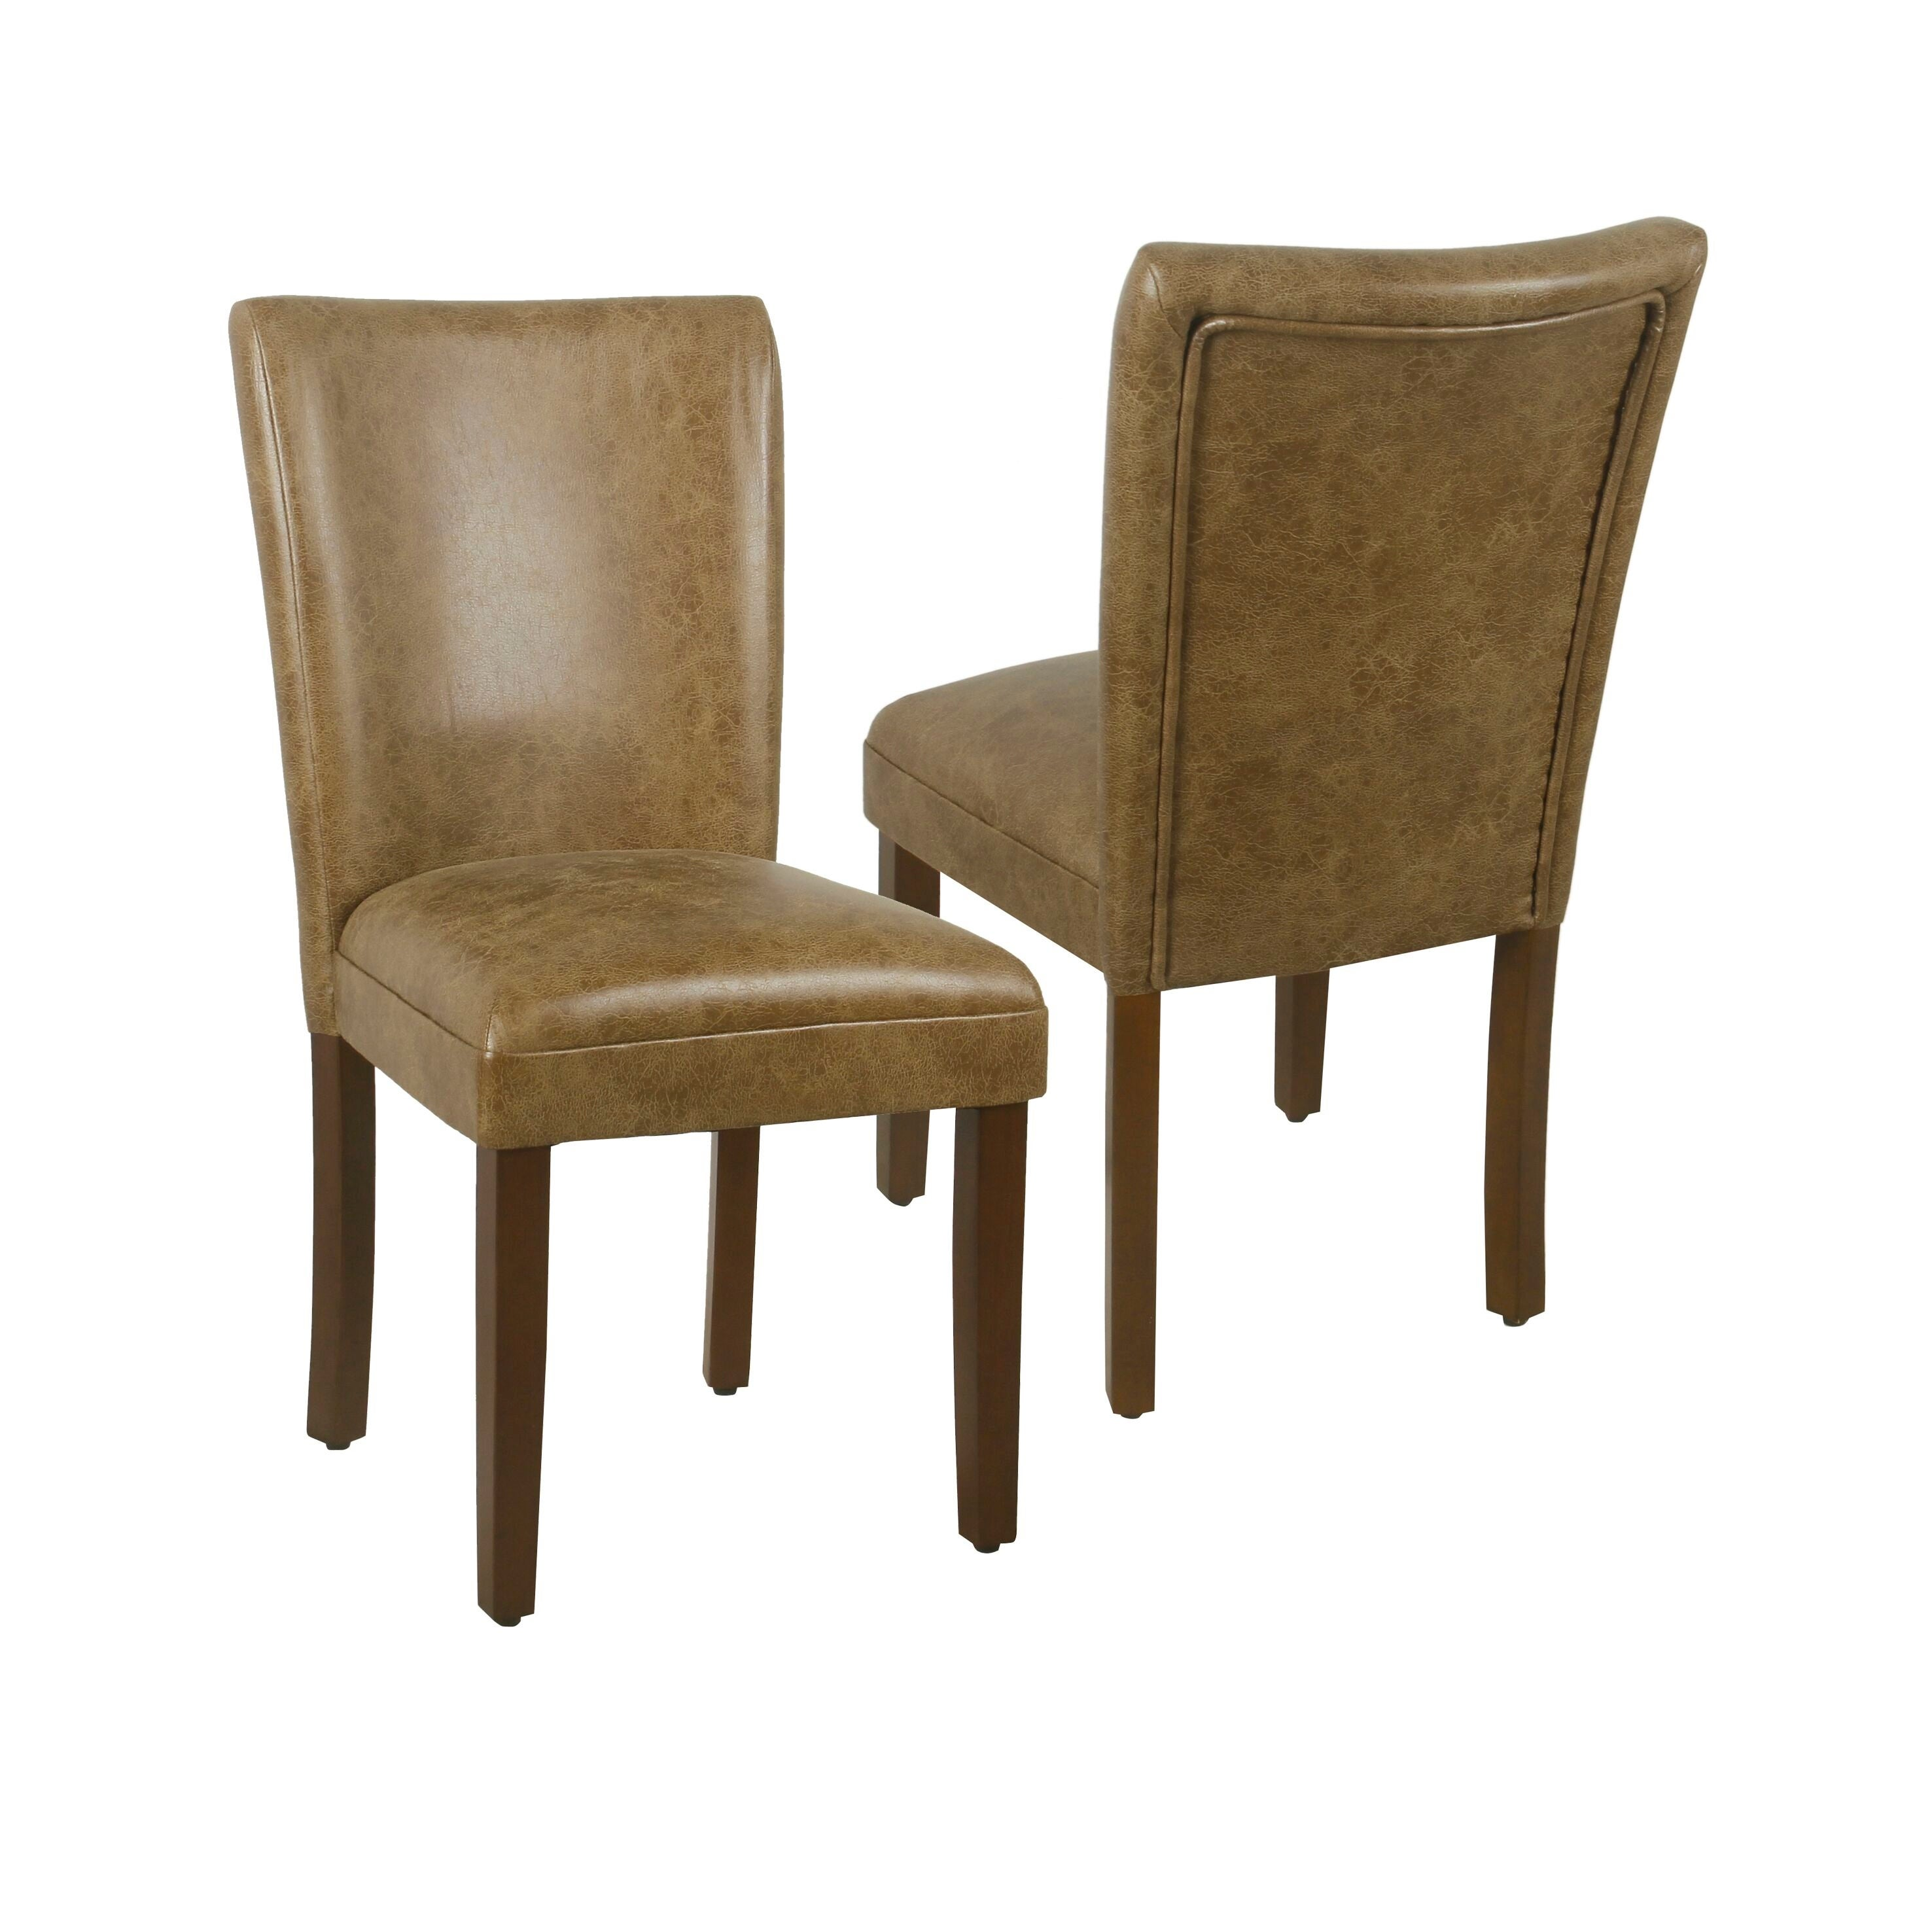 Porch Den Donatello Distressed Brown Faux Leather Parsons Chair Set Of 2 Overstock 30895278